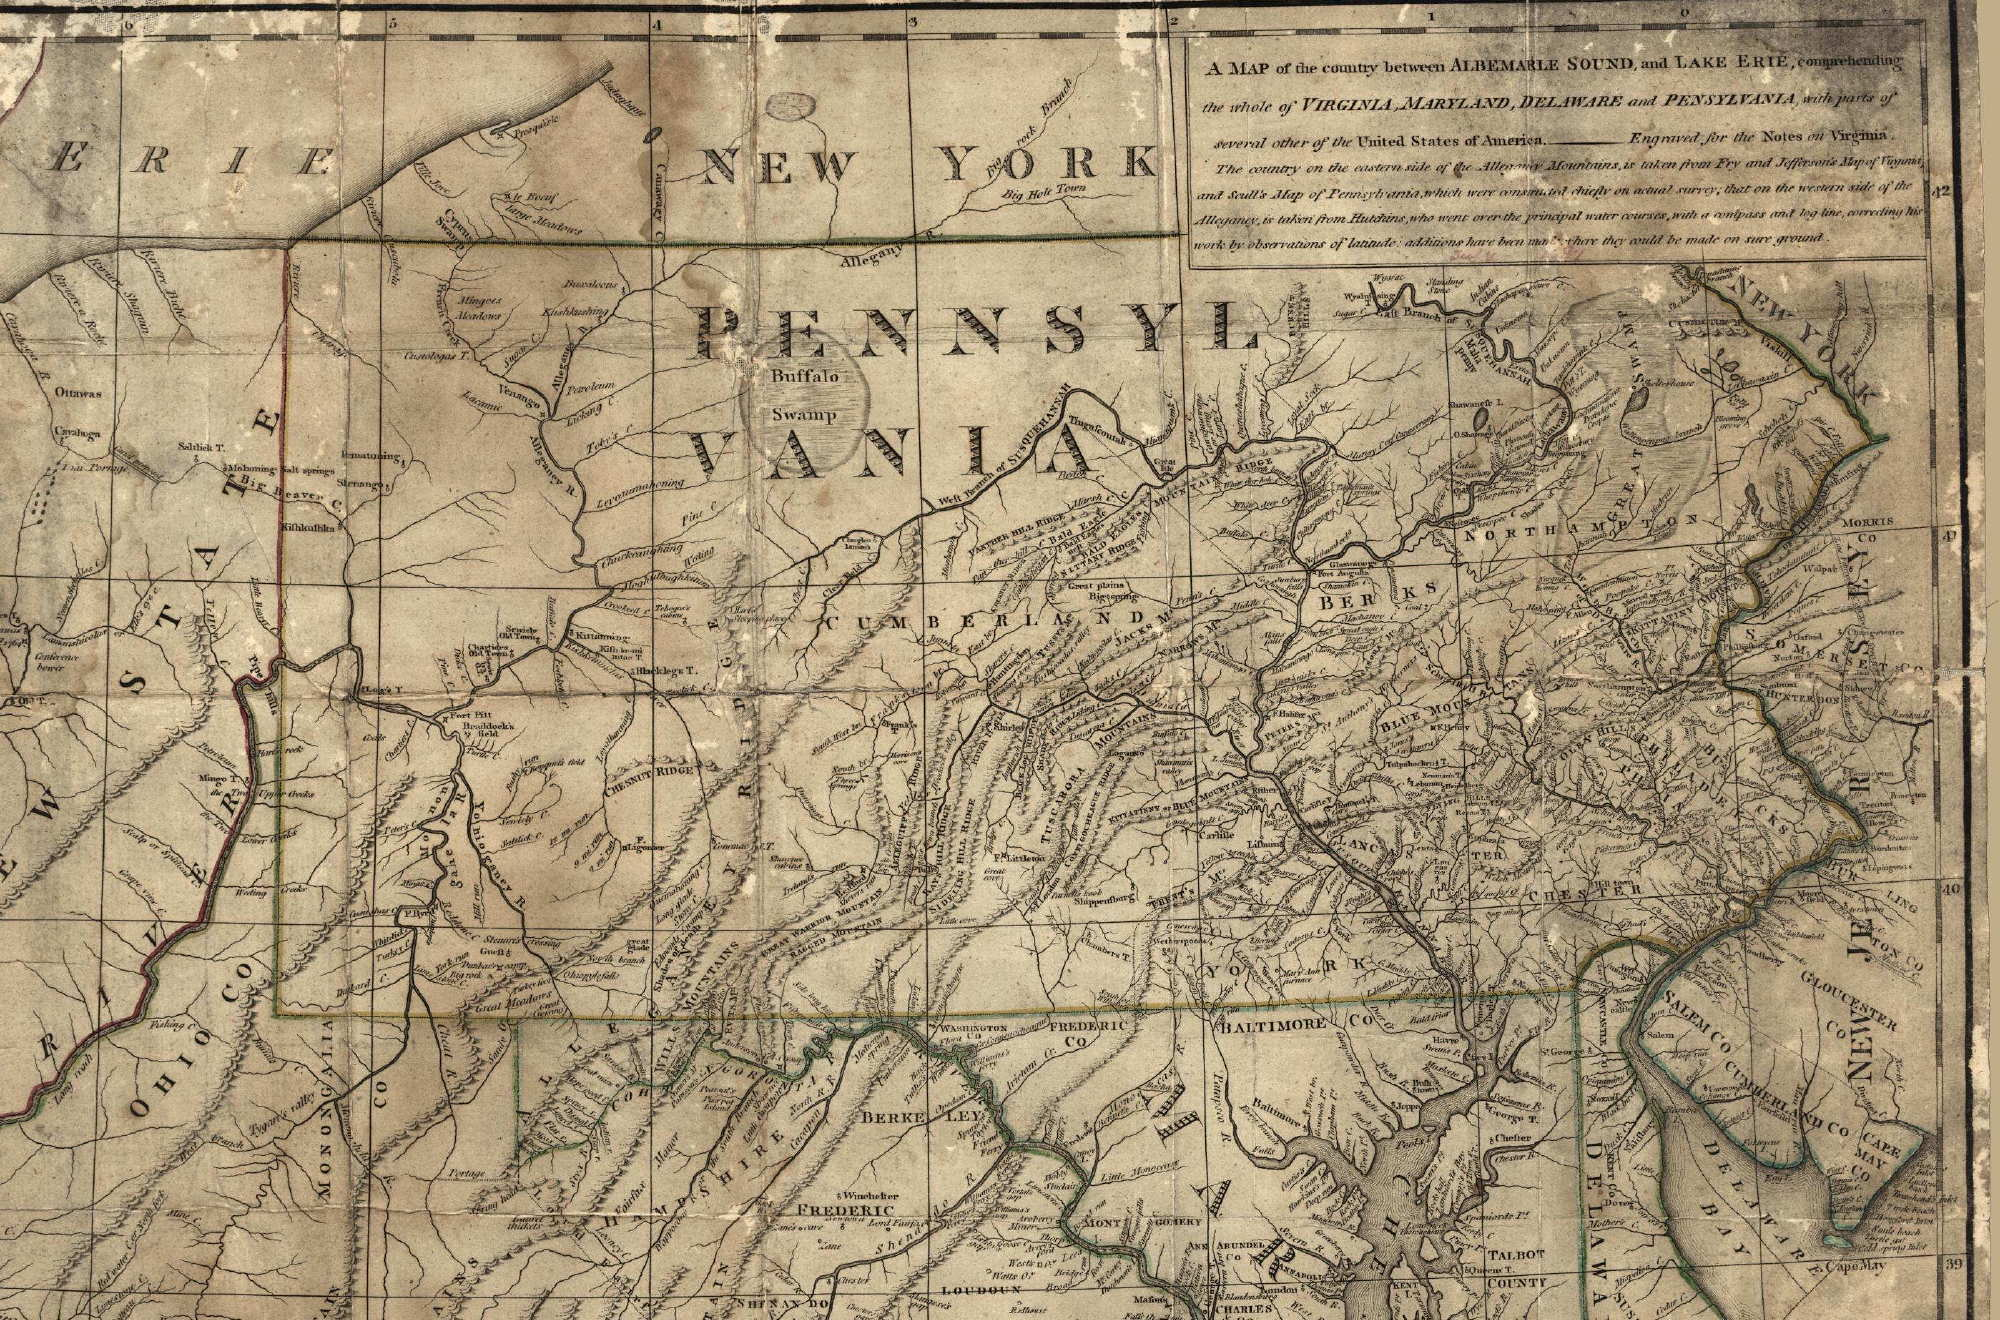 1787 8 a map of the country between albemarle sound and lake erie comprehending the whole of virginia maryland delaware and pensylvania with parts of